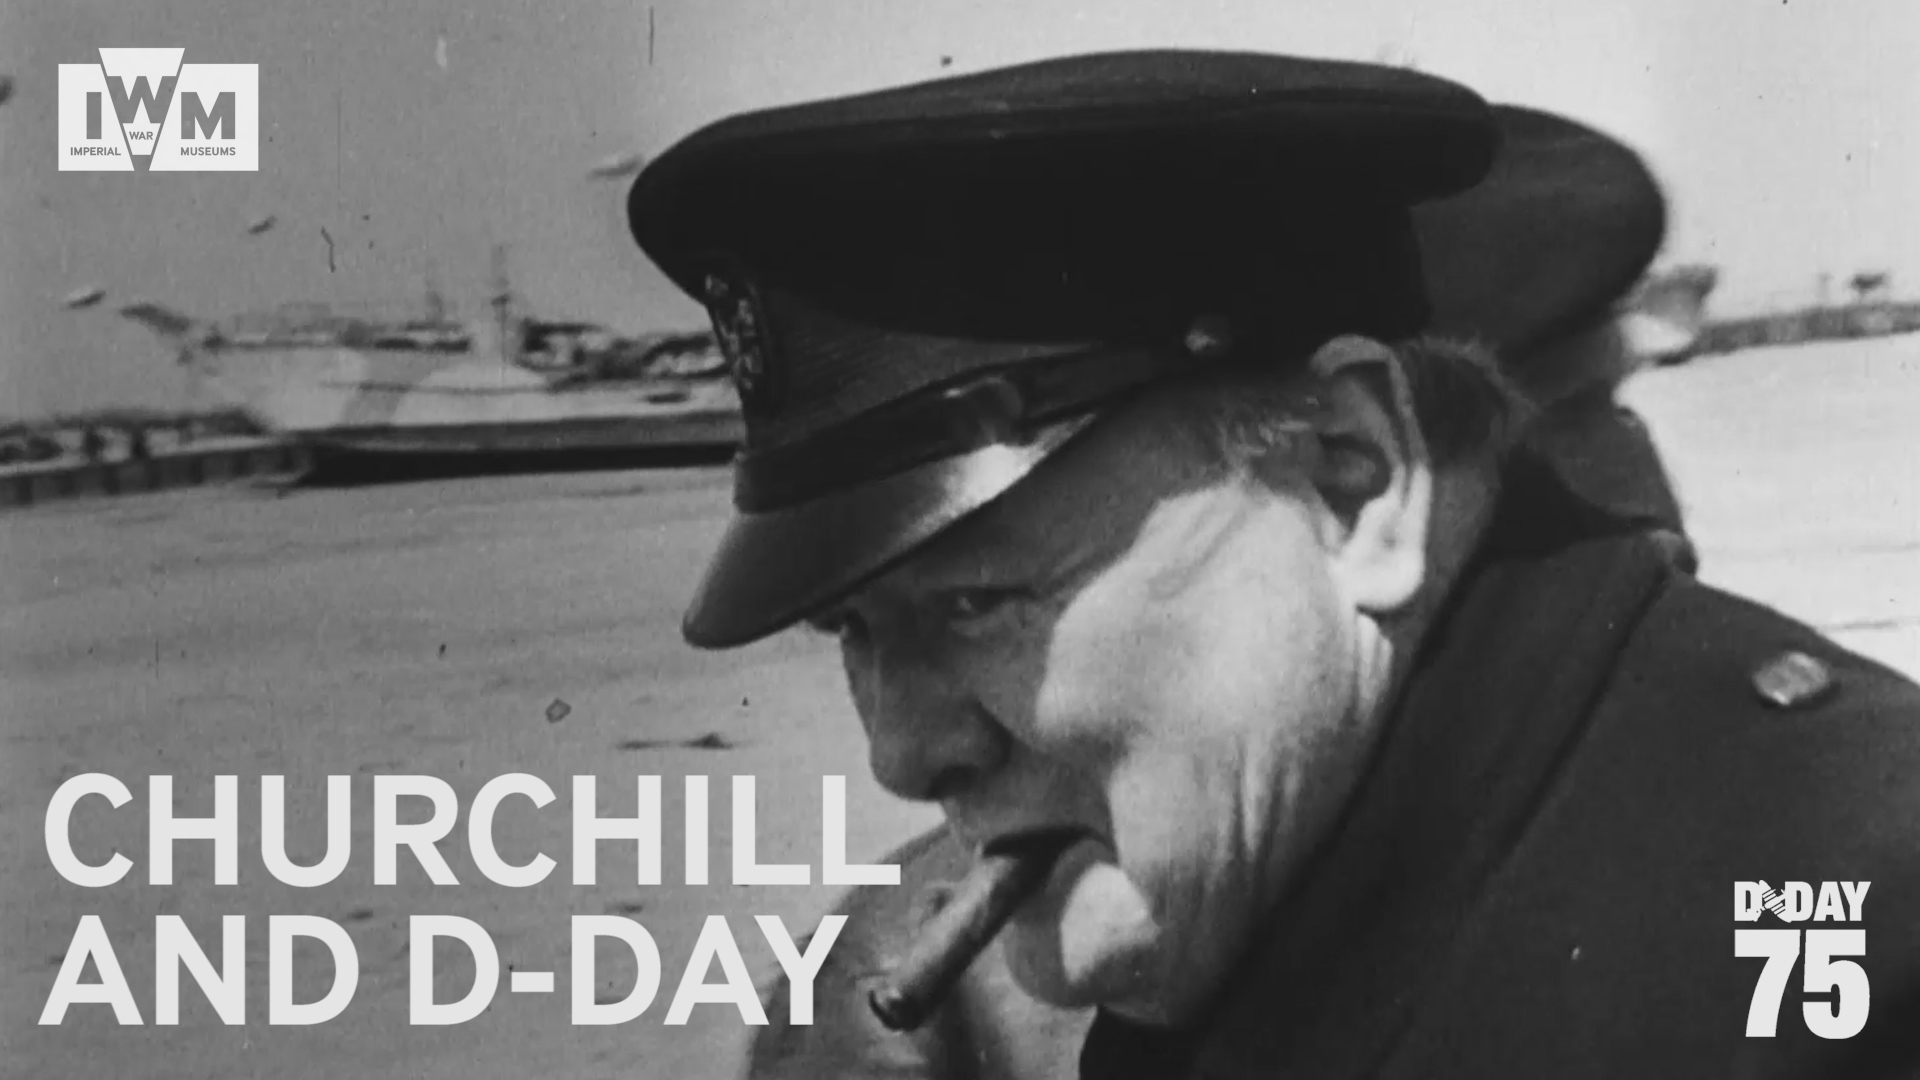 D-Day 75 Churchill and D-Day